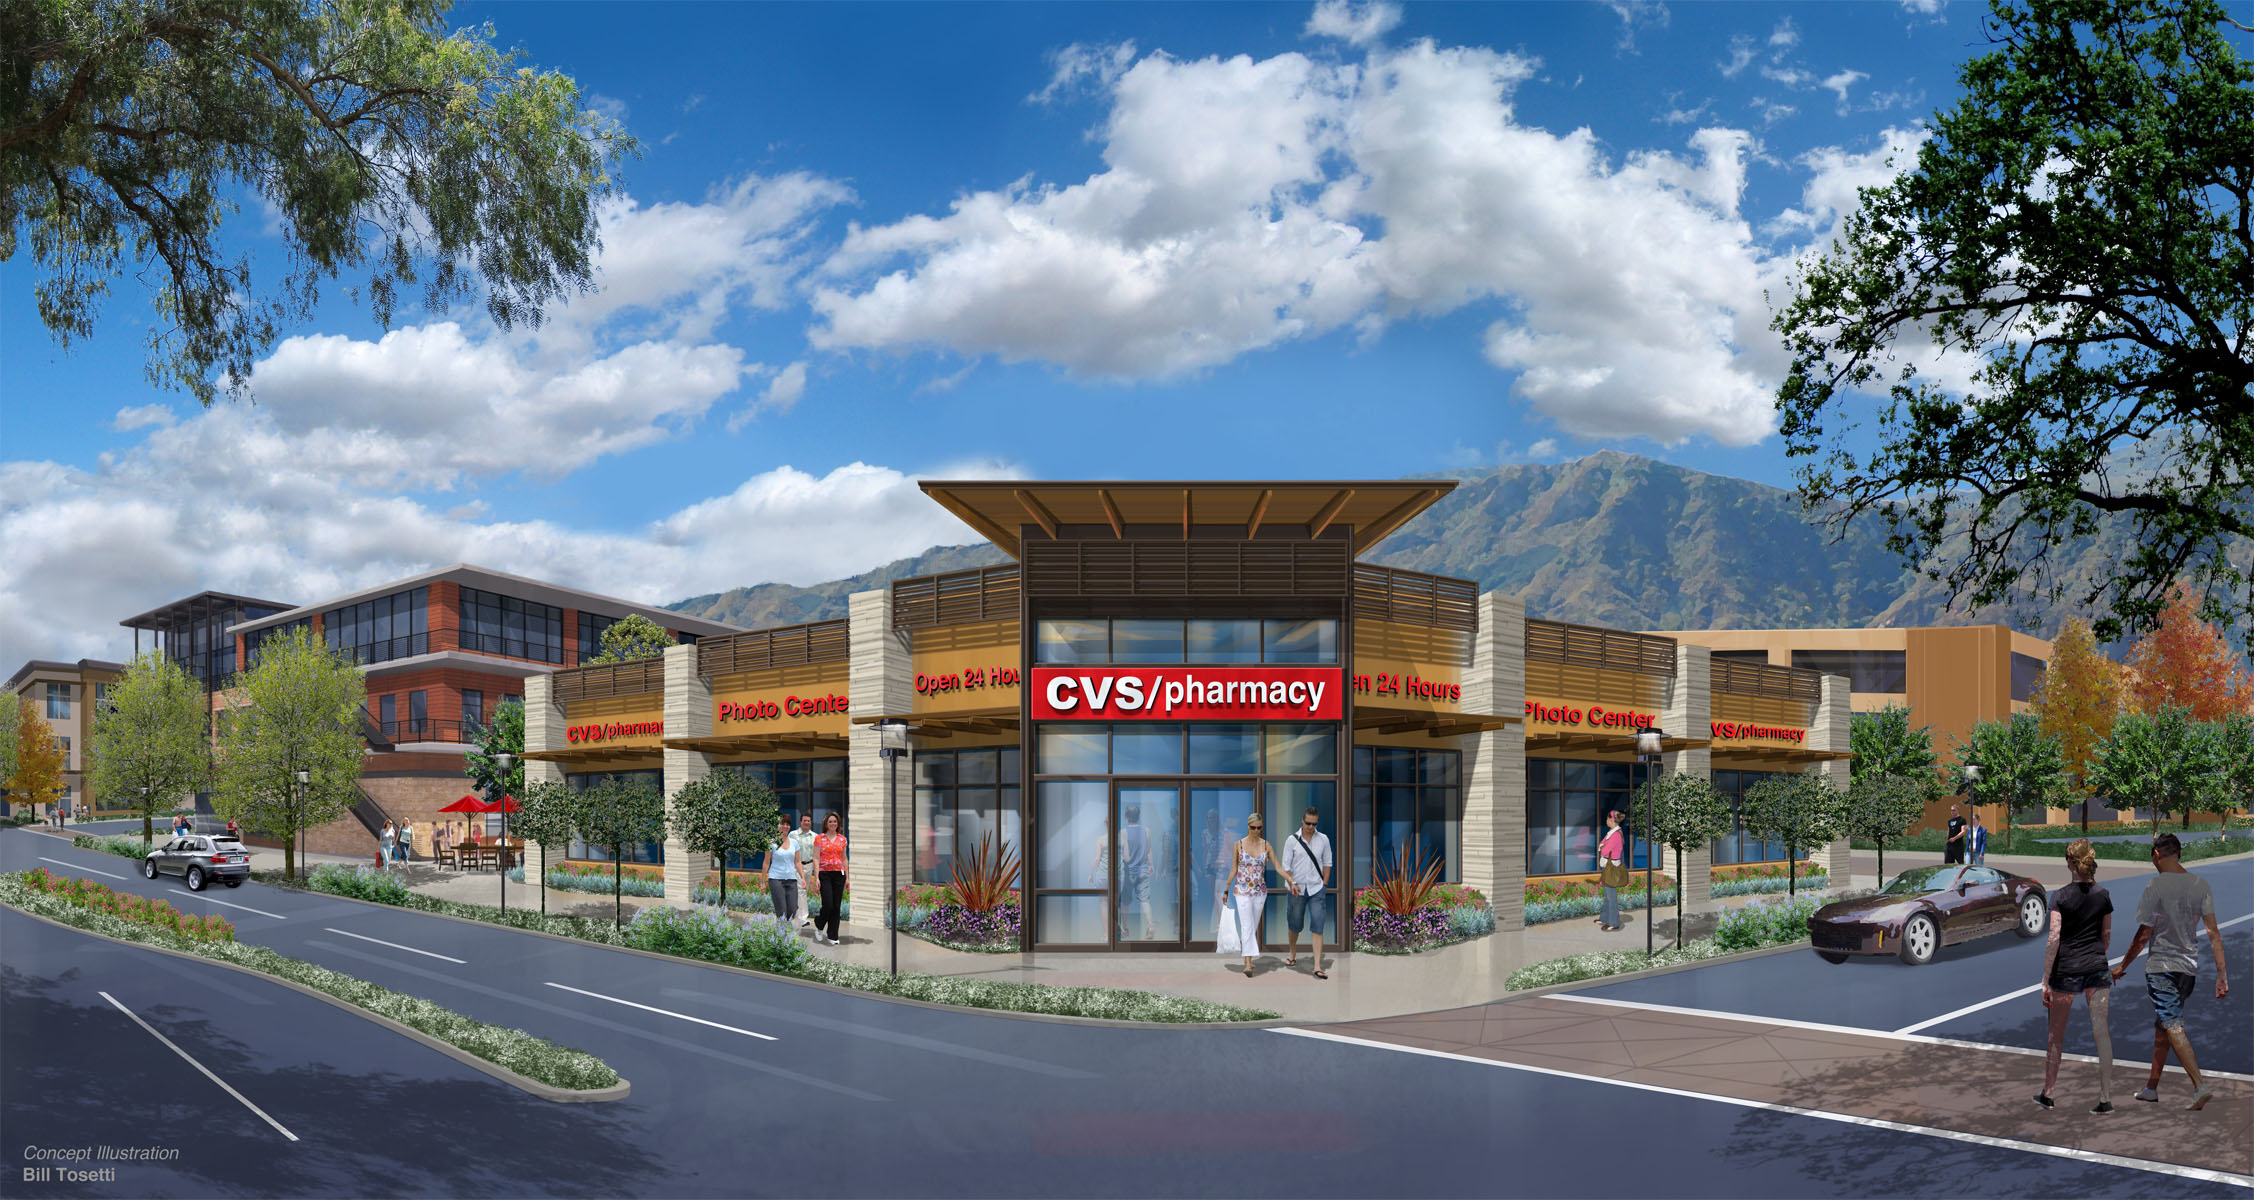 Conceptual illustration Vista Canyon CVS Santa Clarita, CA